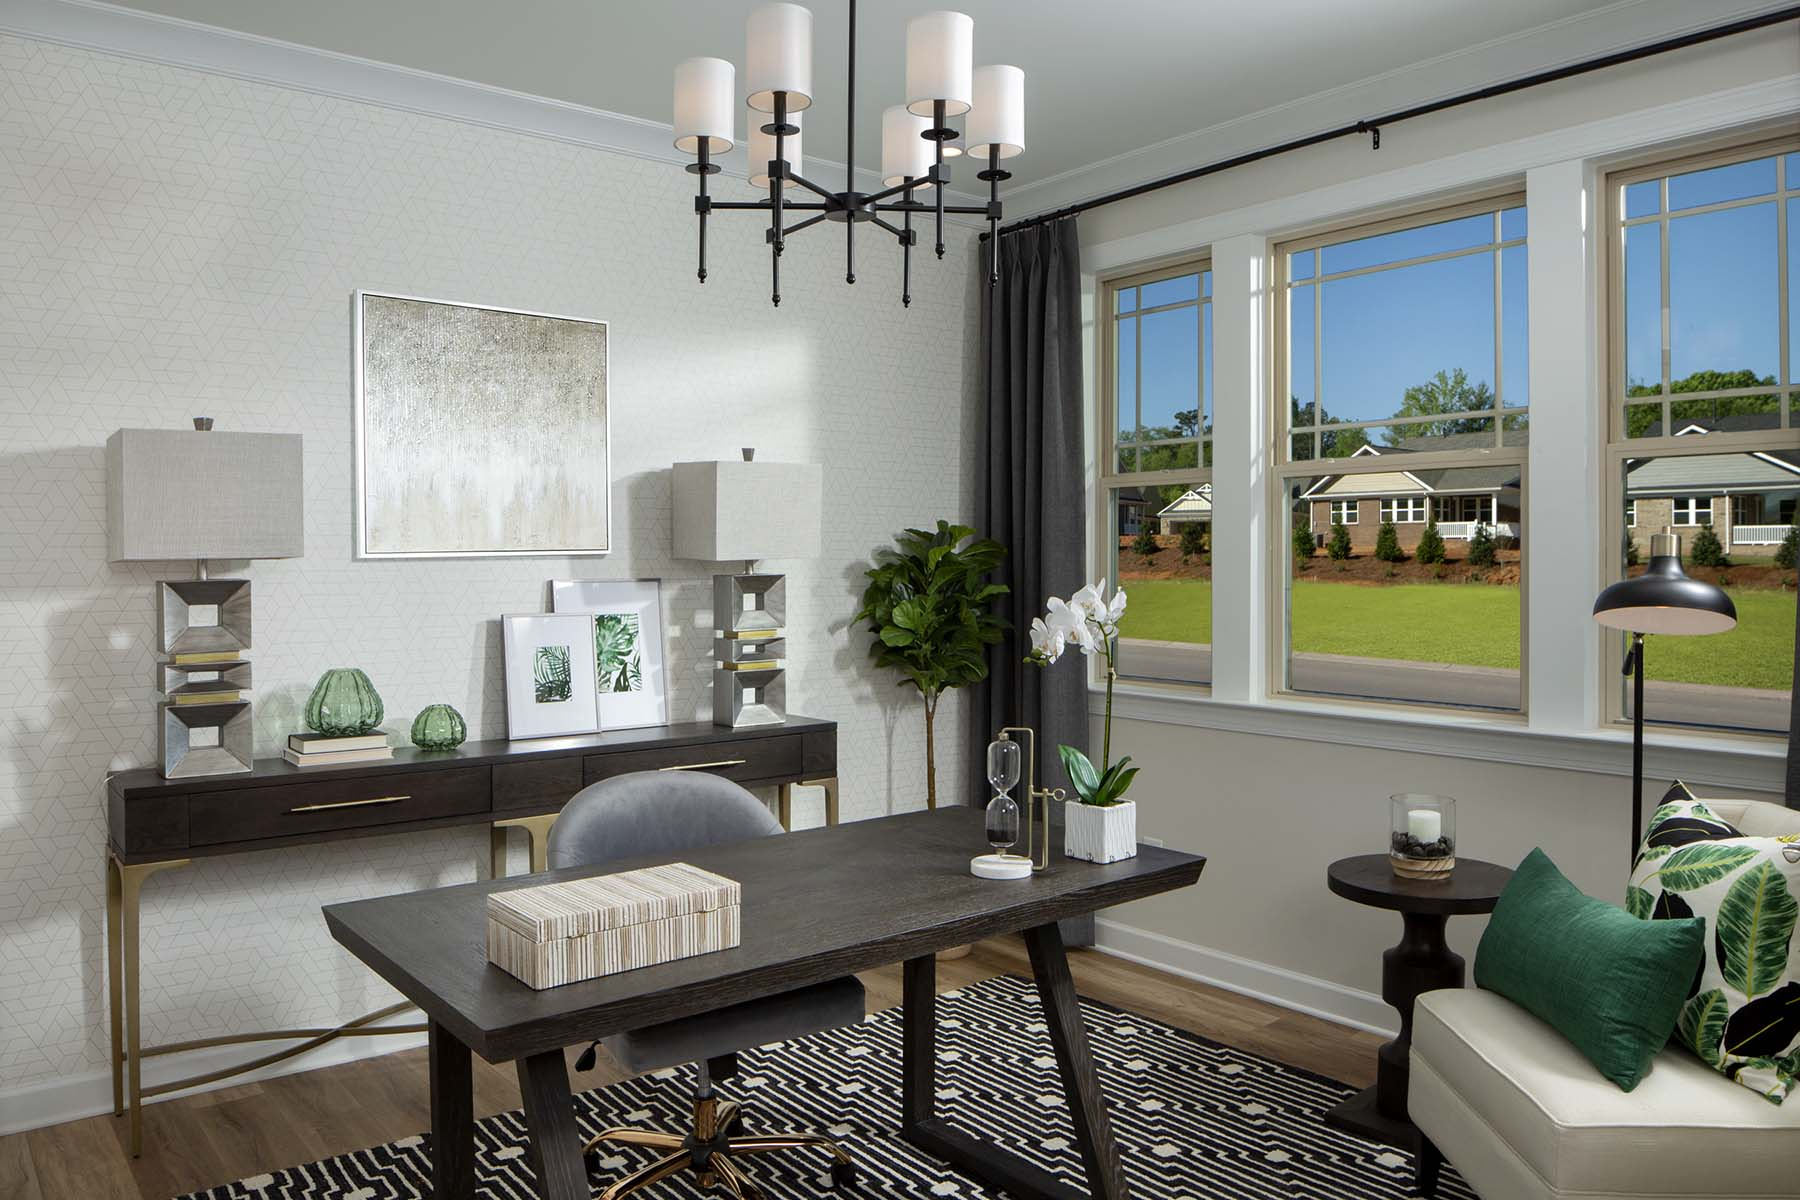 Presley Plan Study Room at Sonata at Mint Hill in Mint Hill North Carolina by Mattamy Homes